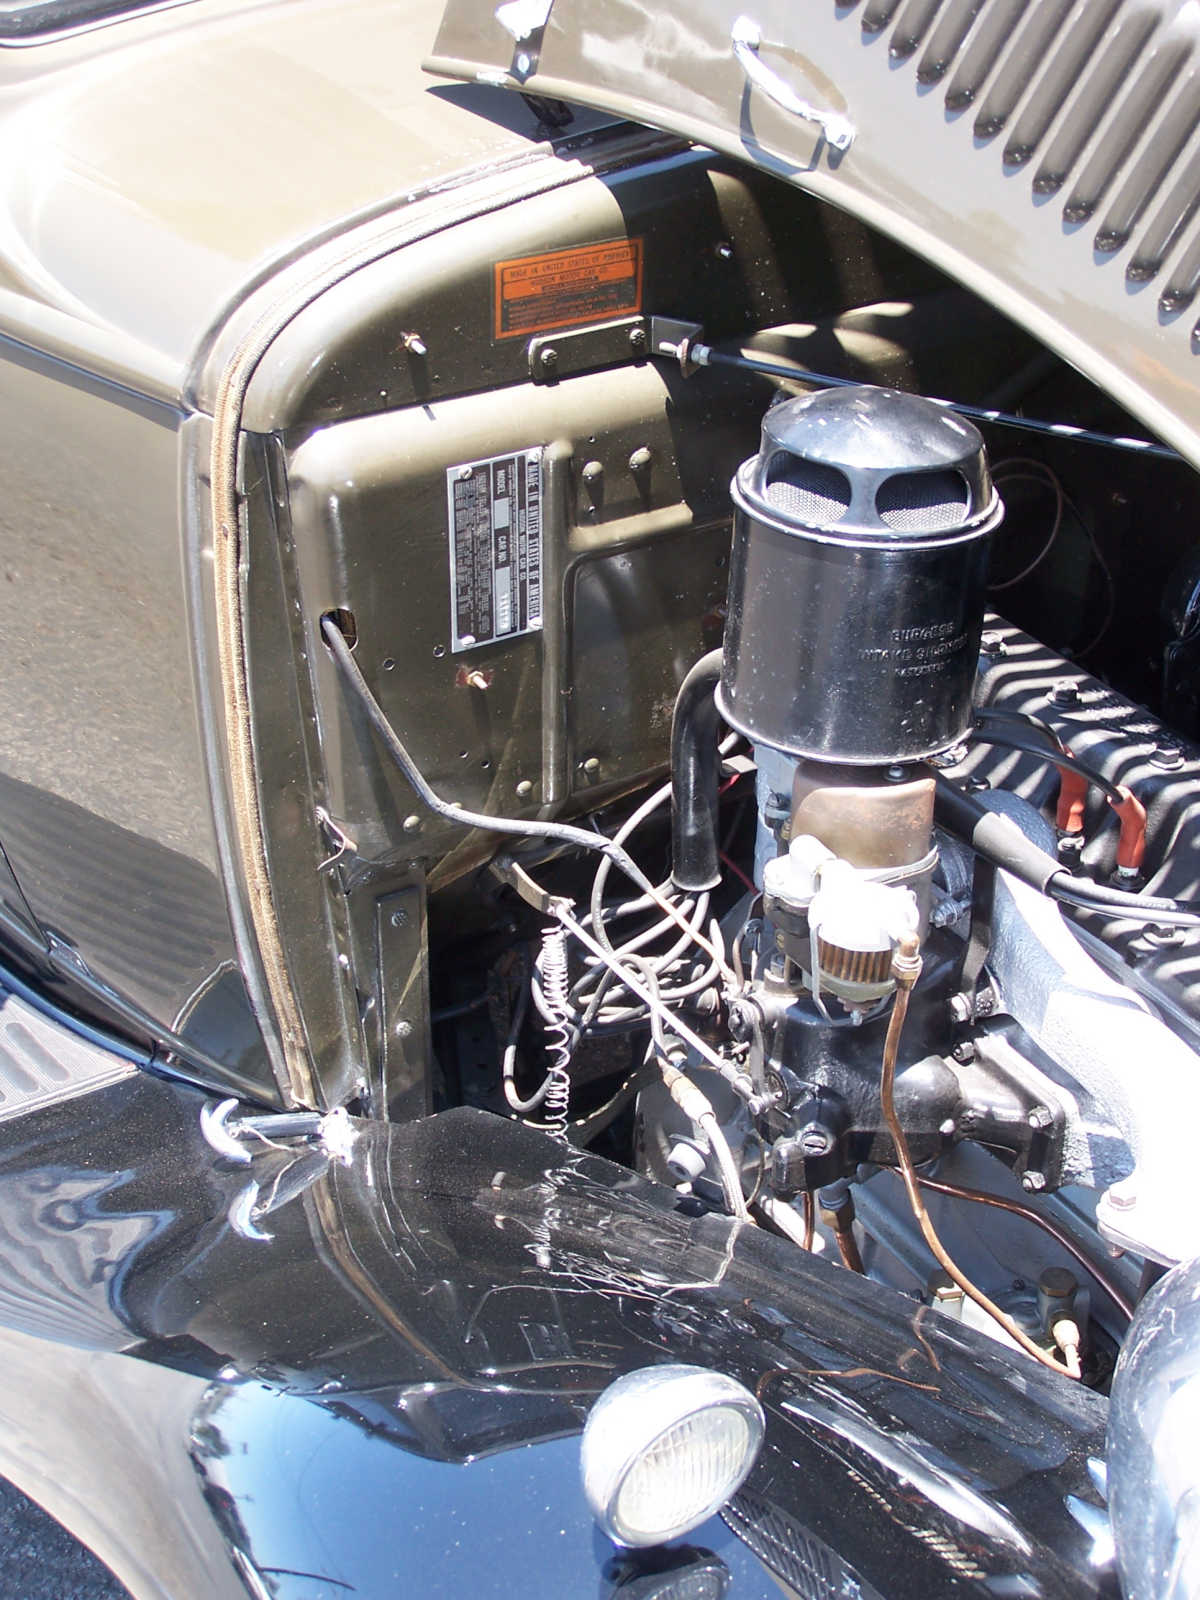 1932 Hudson Essex Terraplane engine